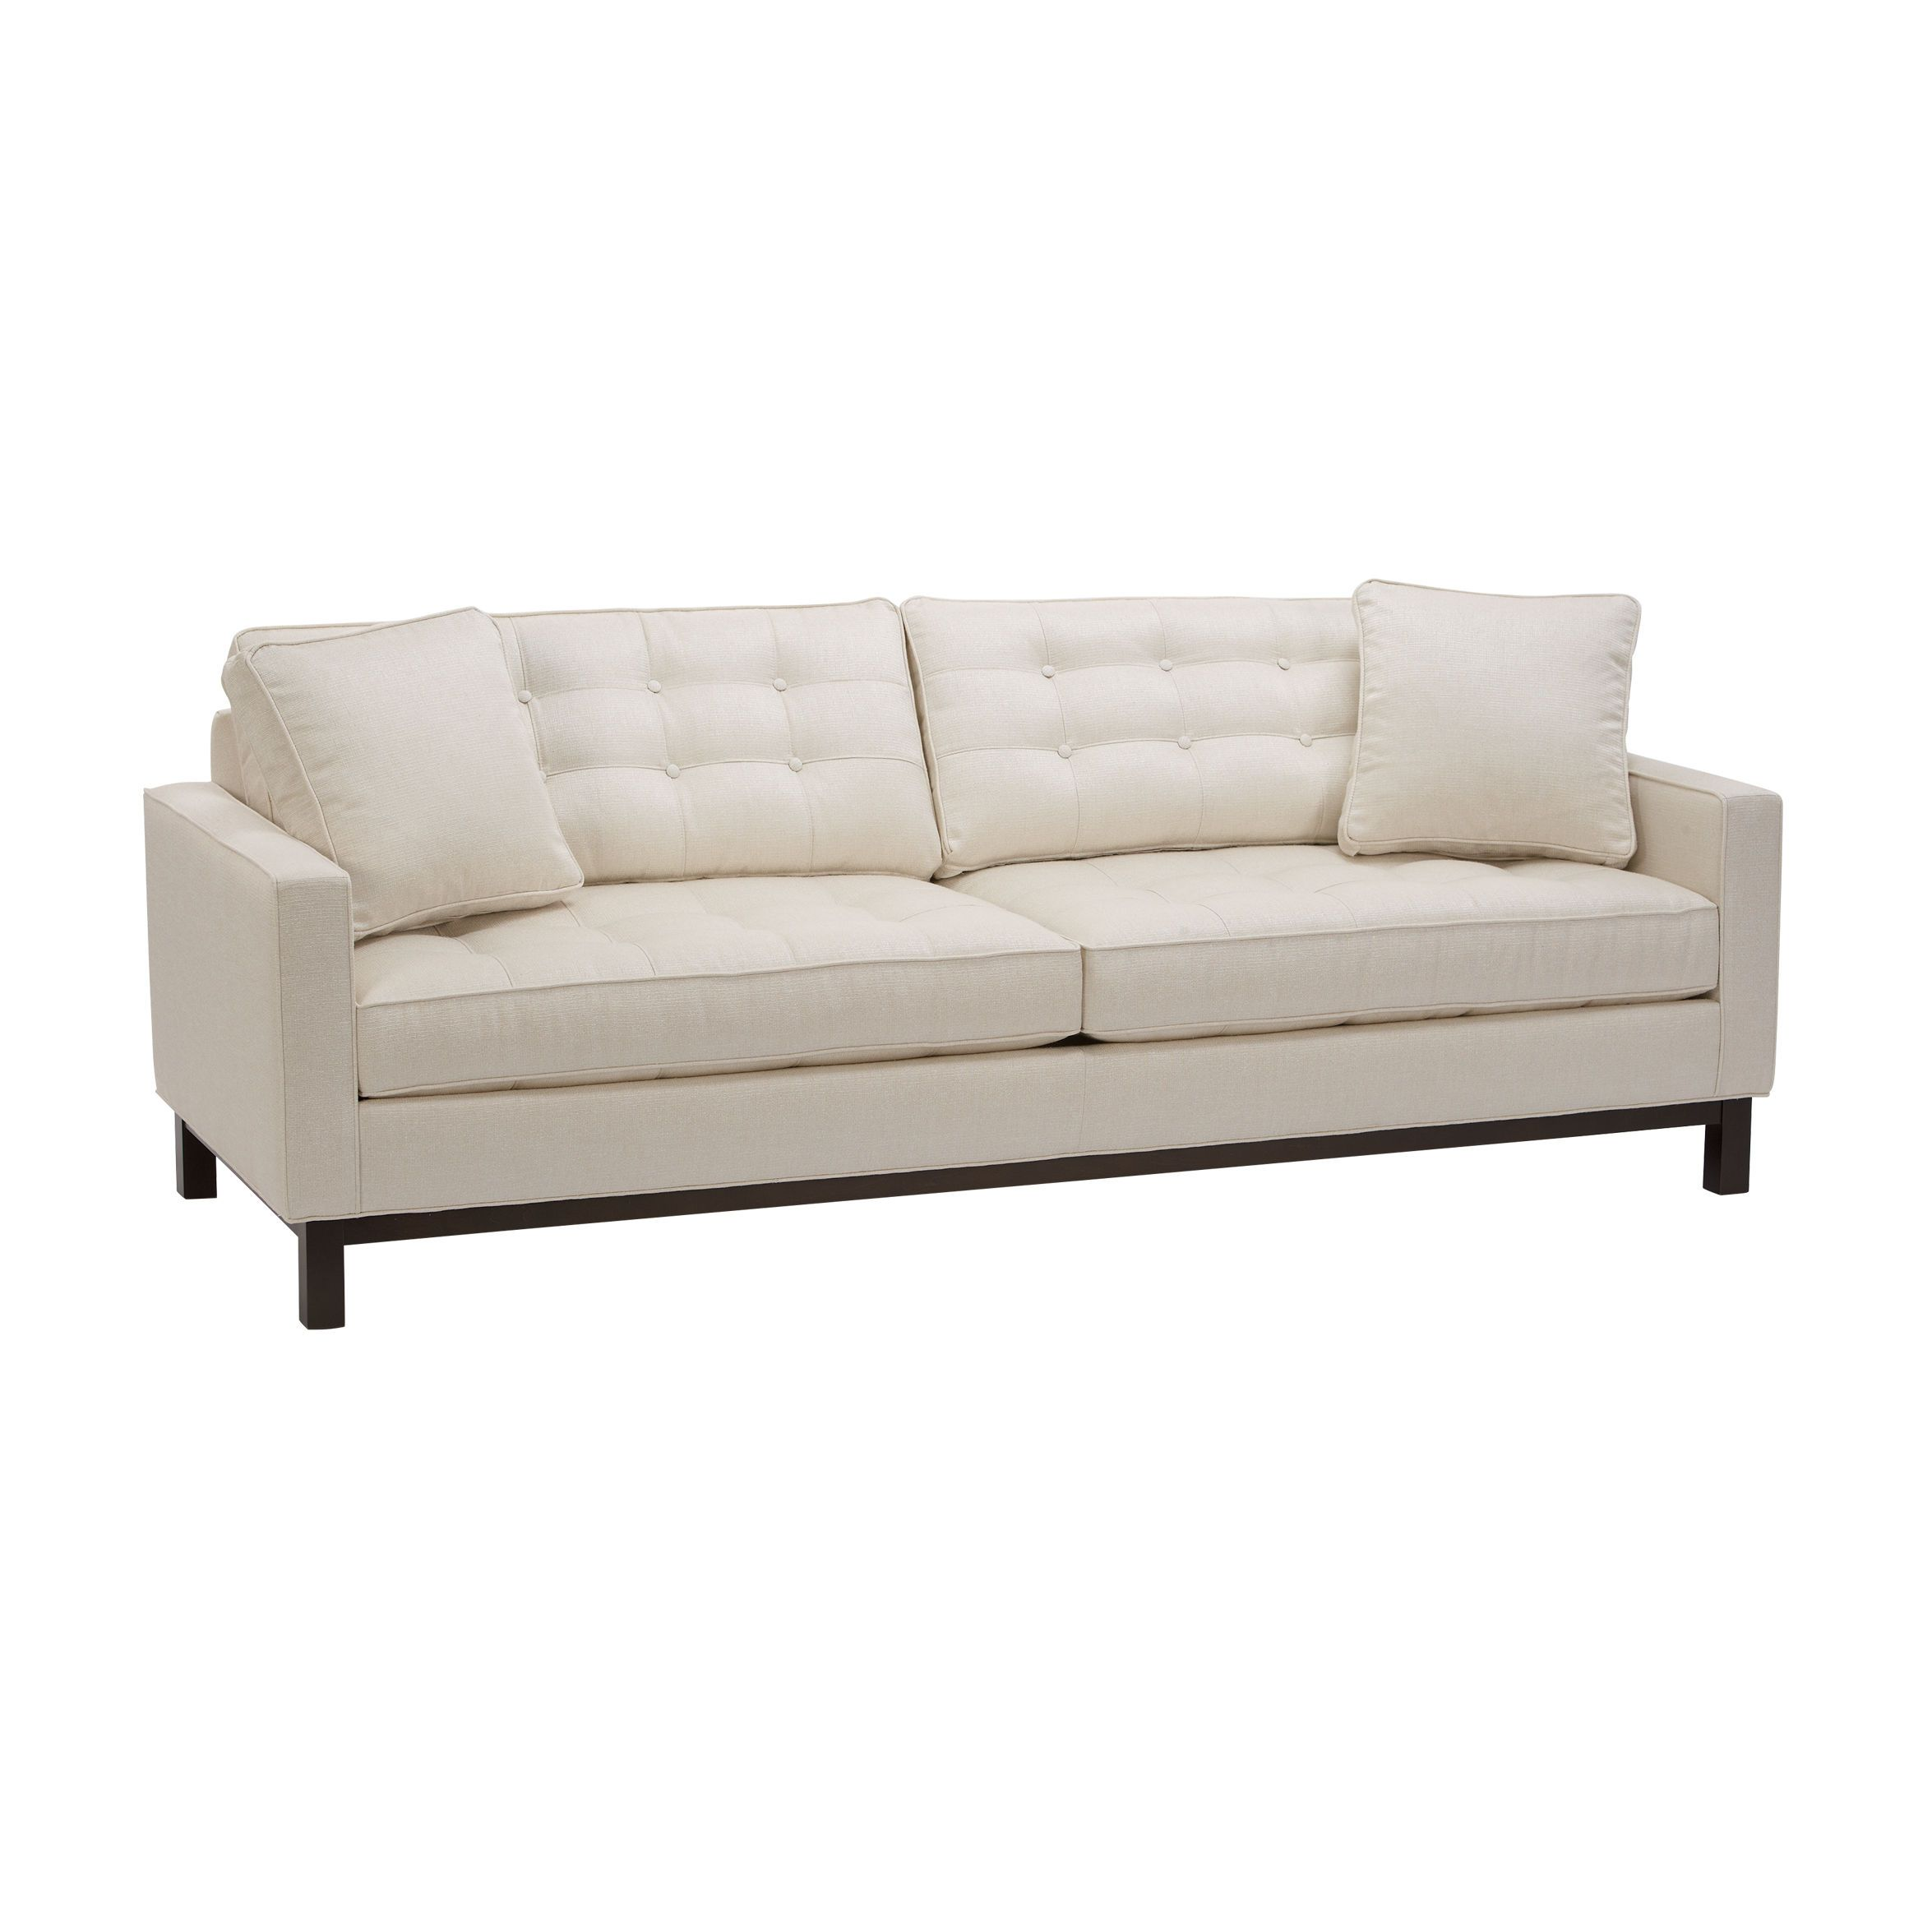 Ethan Allen Living Rooms Melrose 87 Sofa Us